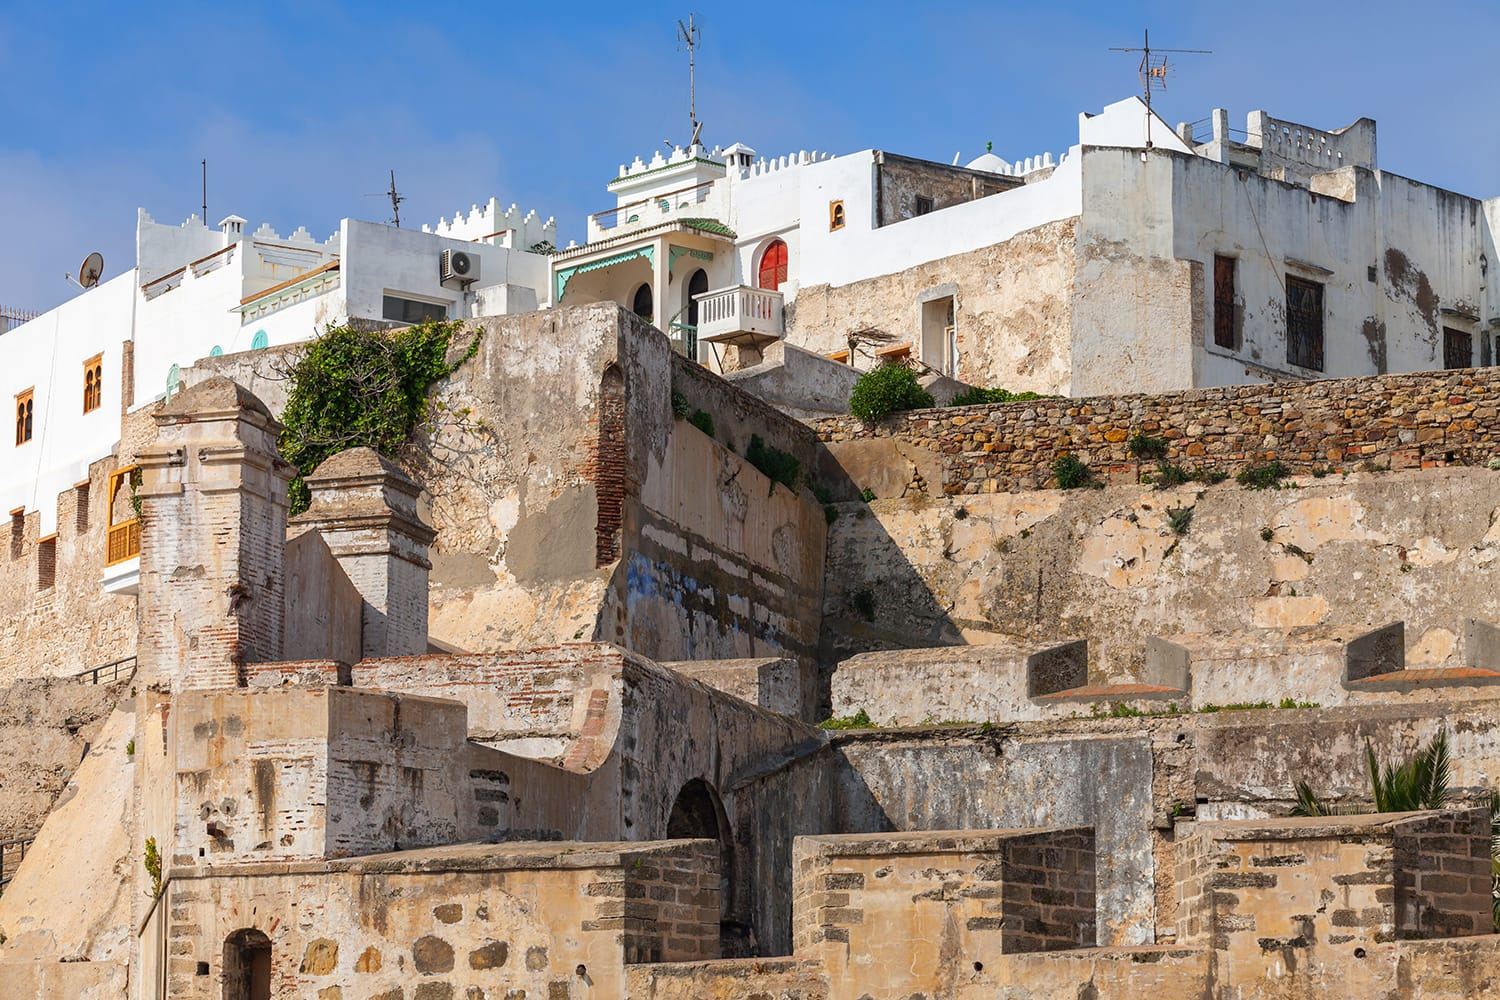 Ancient fortress and living houses in Medina, old Tangier, Morocco